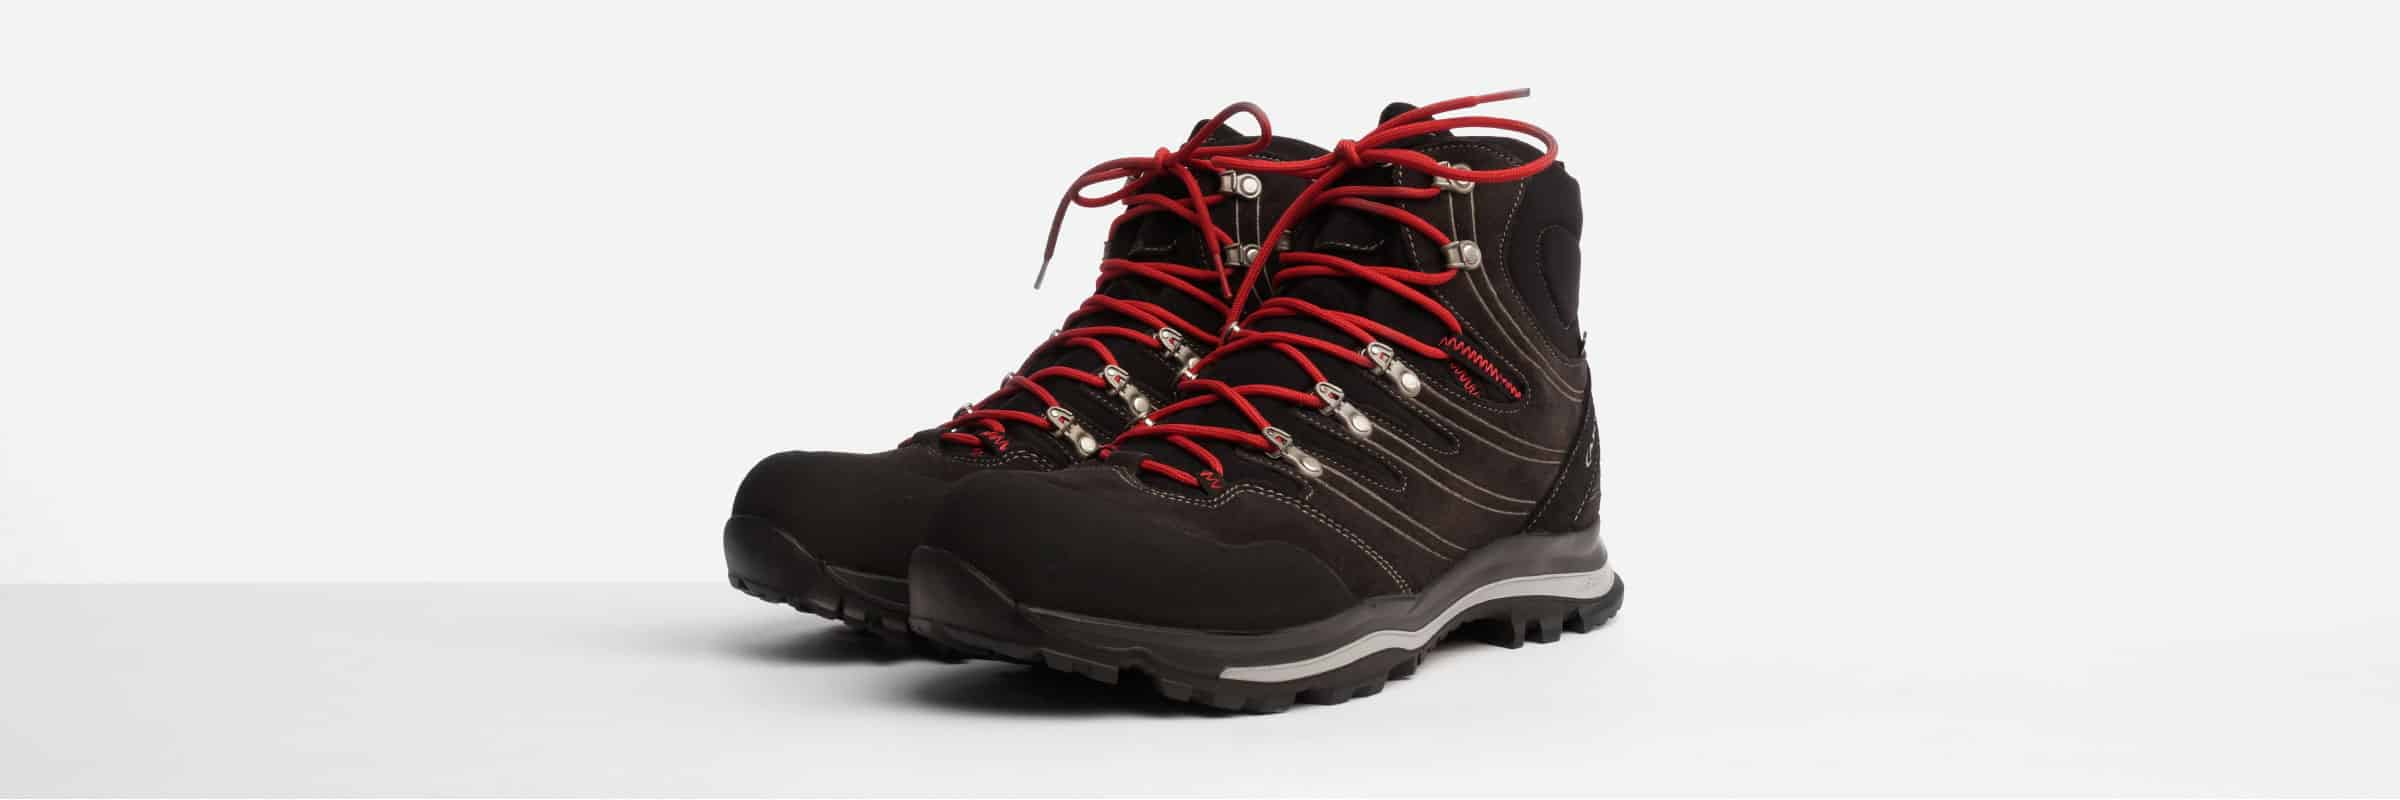 AKU, Hiking & Trekking. AKU Men's Alterra GTX Hiking Boots Reviewed